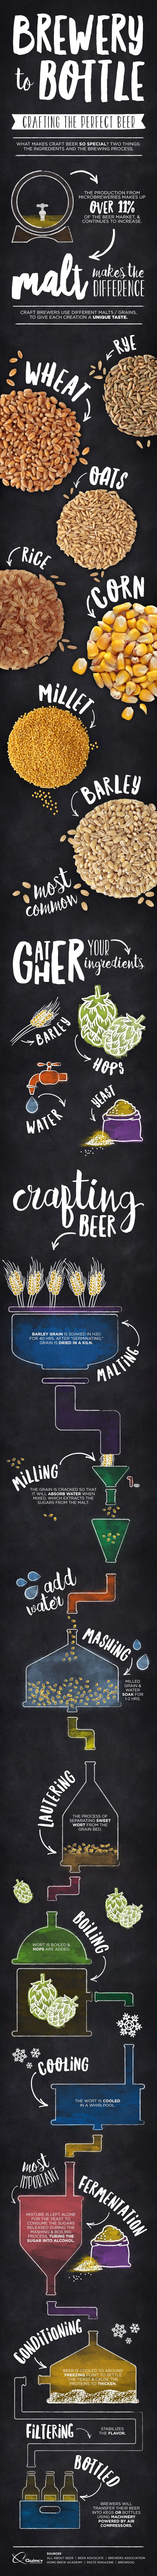 From Brewery to Bottle: Crafting the Perfect Beer [Infographic]